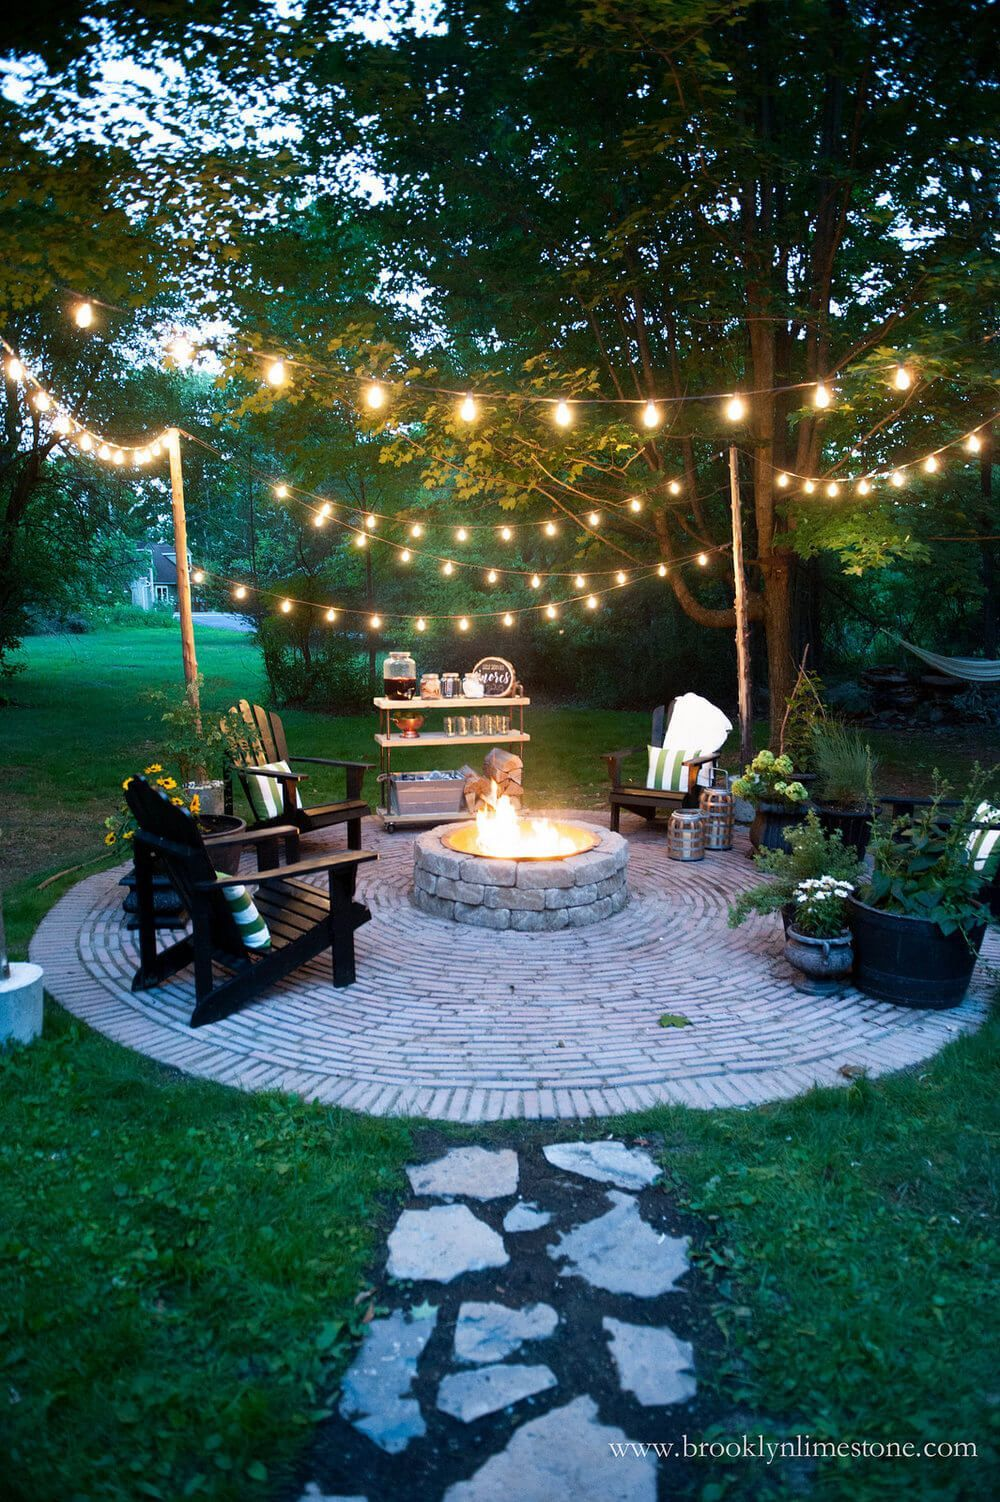 20 attractive diy firepit ideas backyard inspiration on best large backyard ideas with attractive fire pit on a budget id=87495